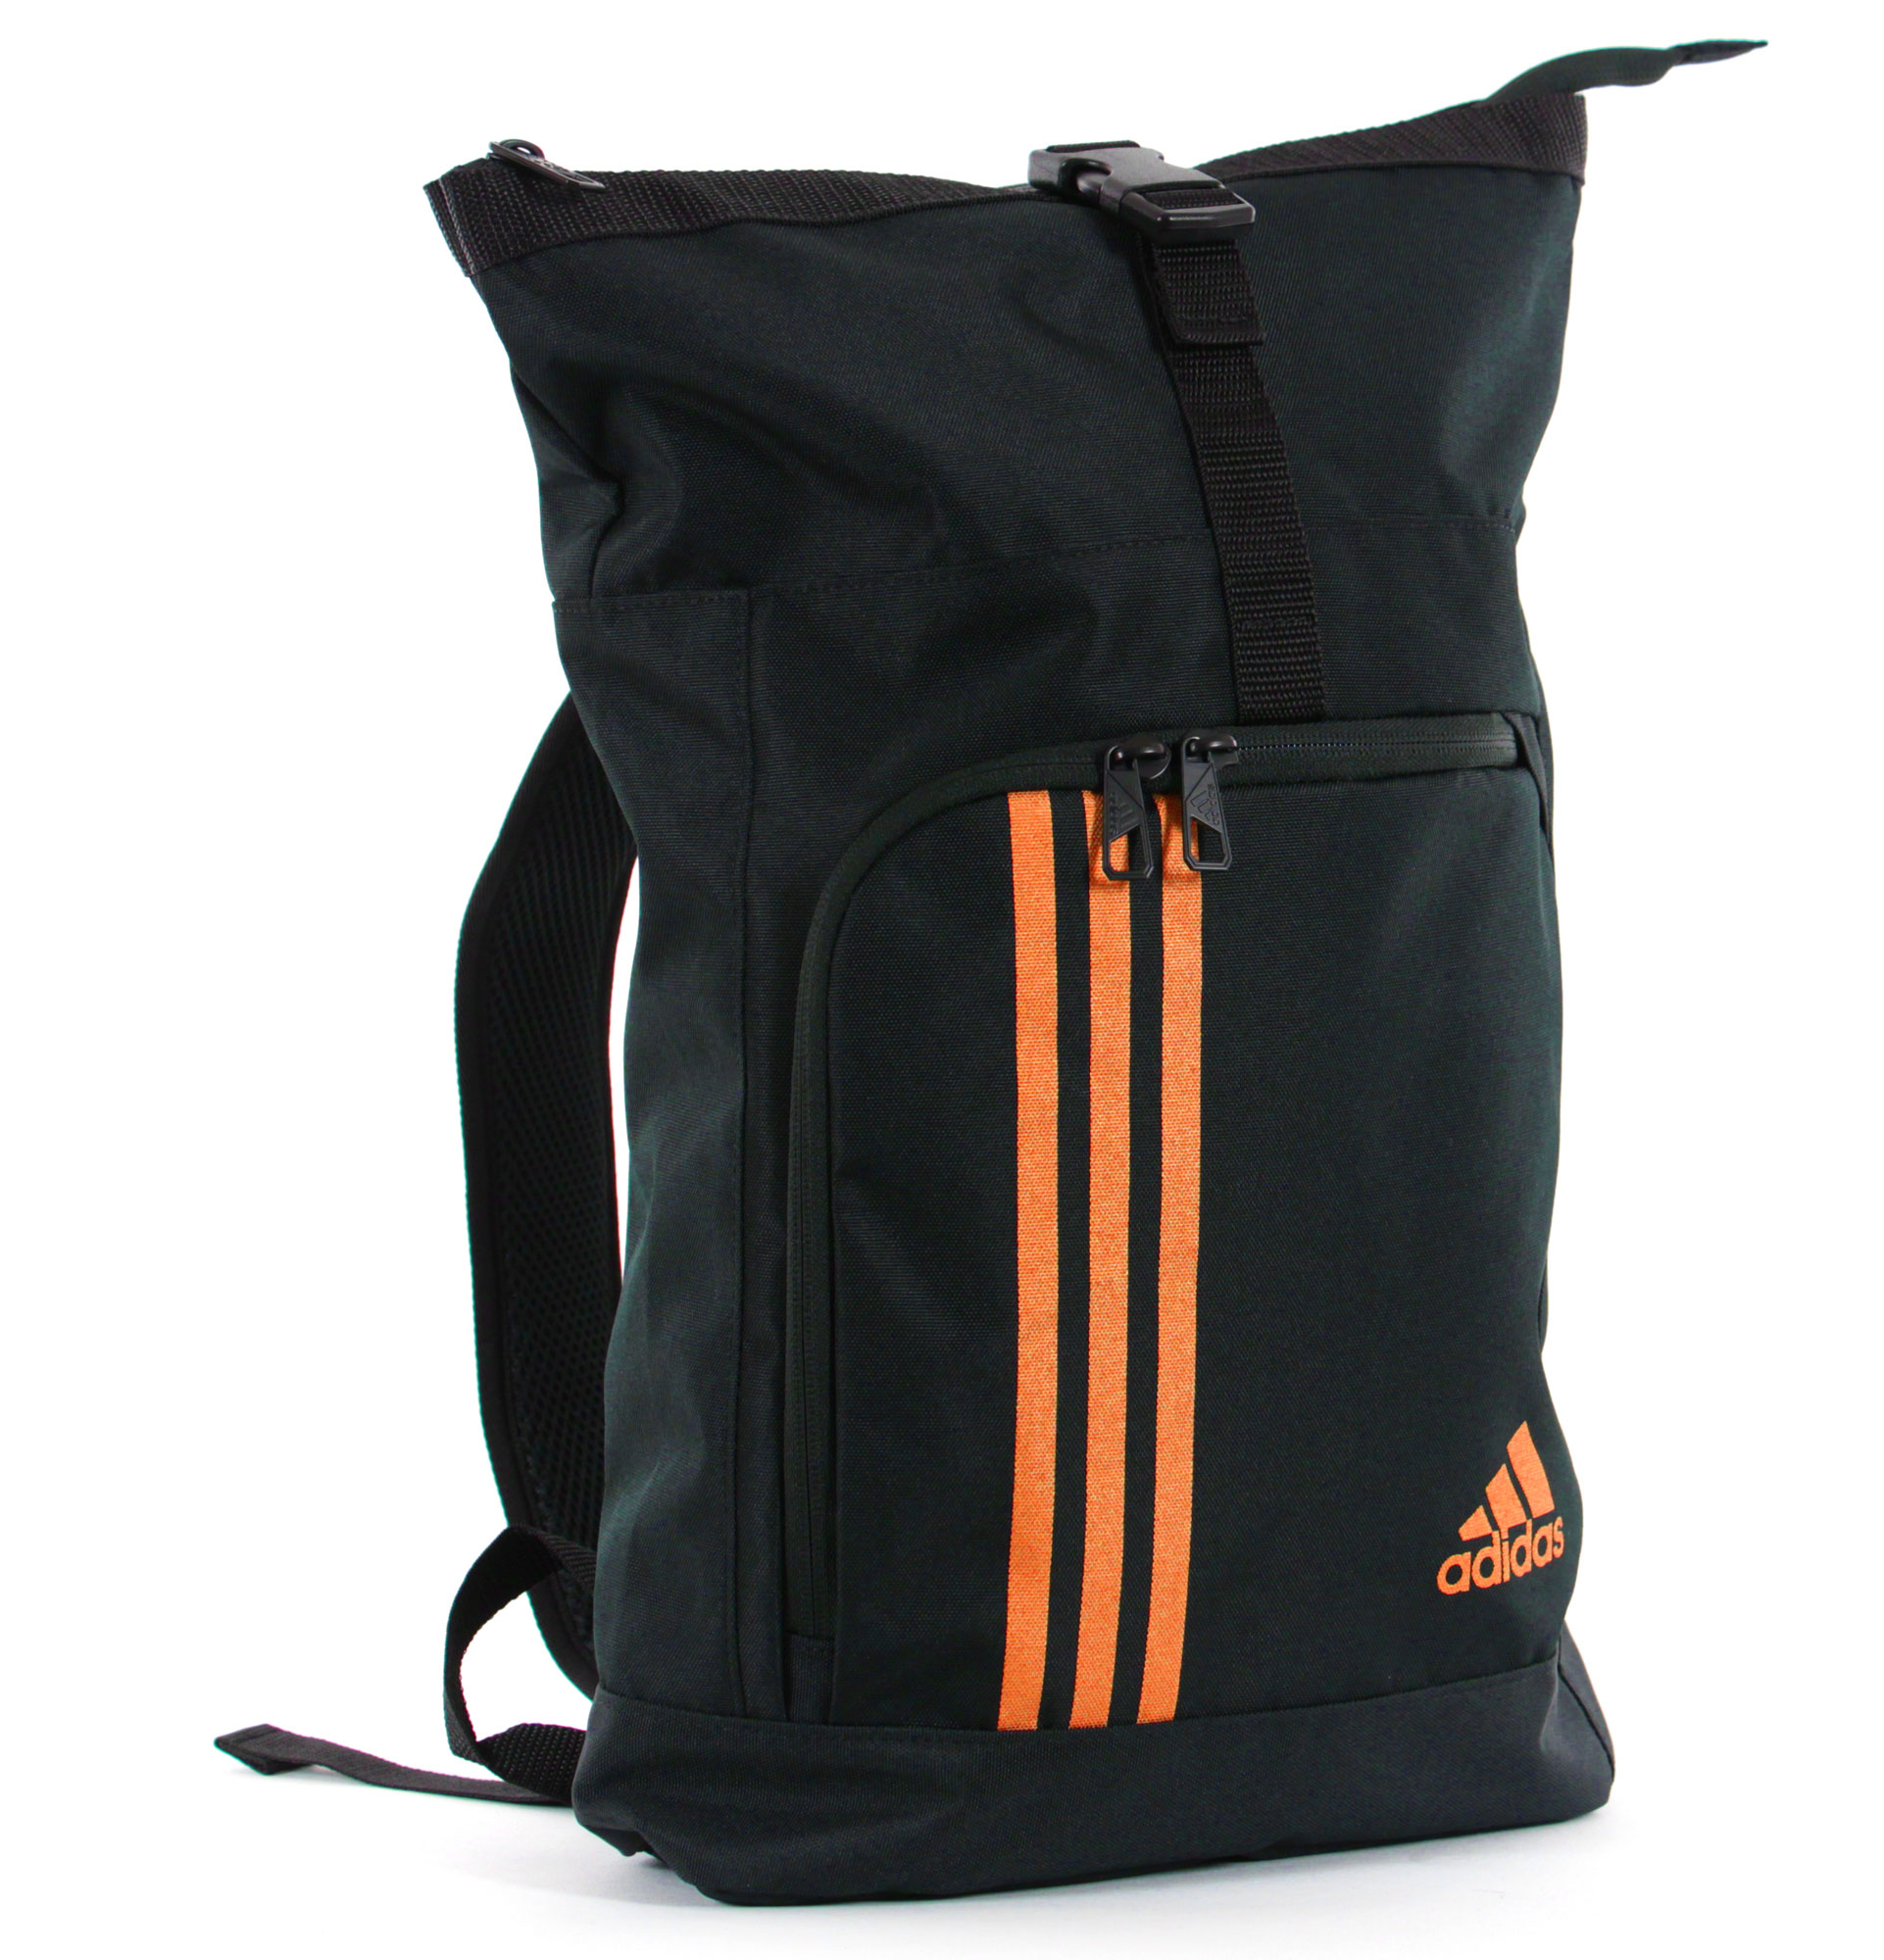 adidas seesack sporttasche und rucksack adiacc041 l. Black Bedroom Furniture Sets. Home Design Ideas